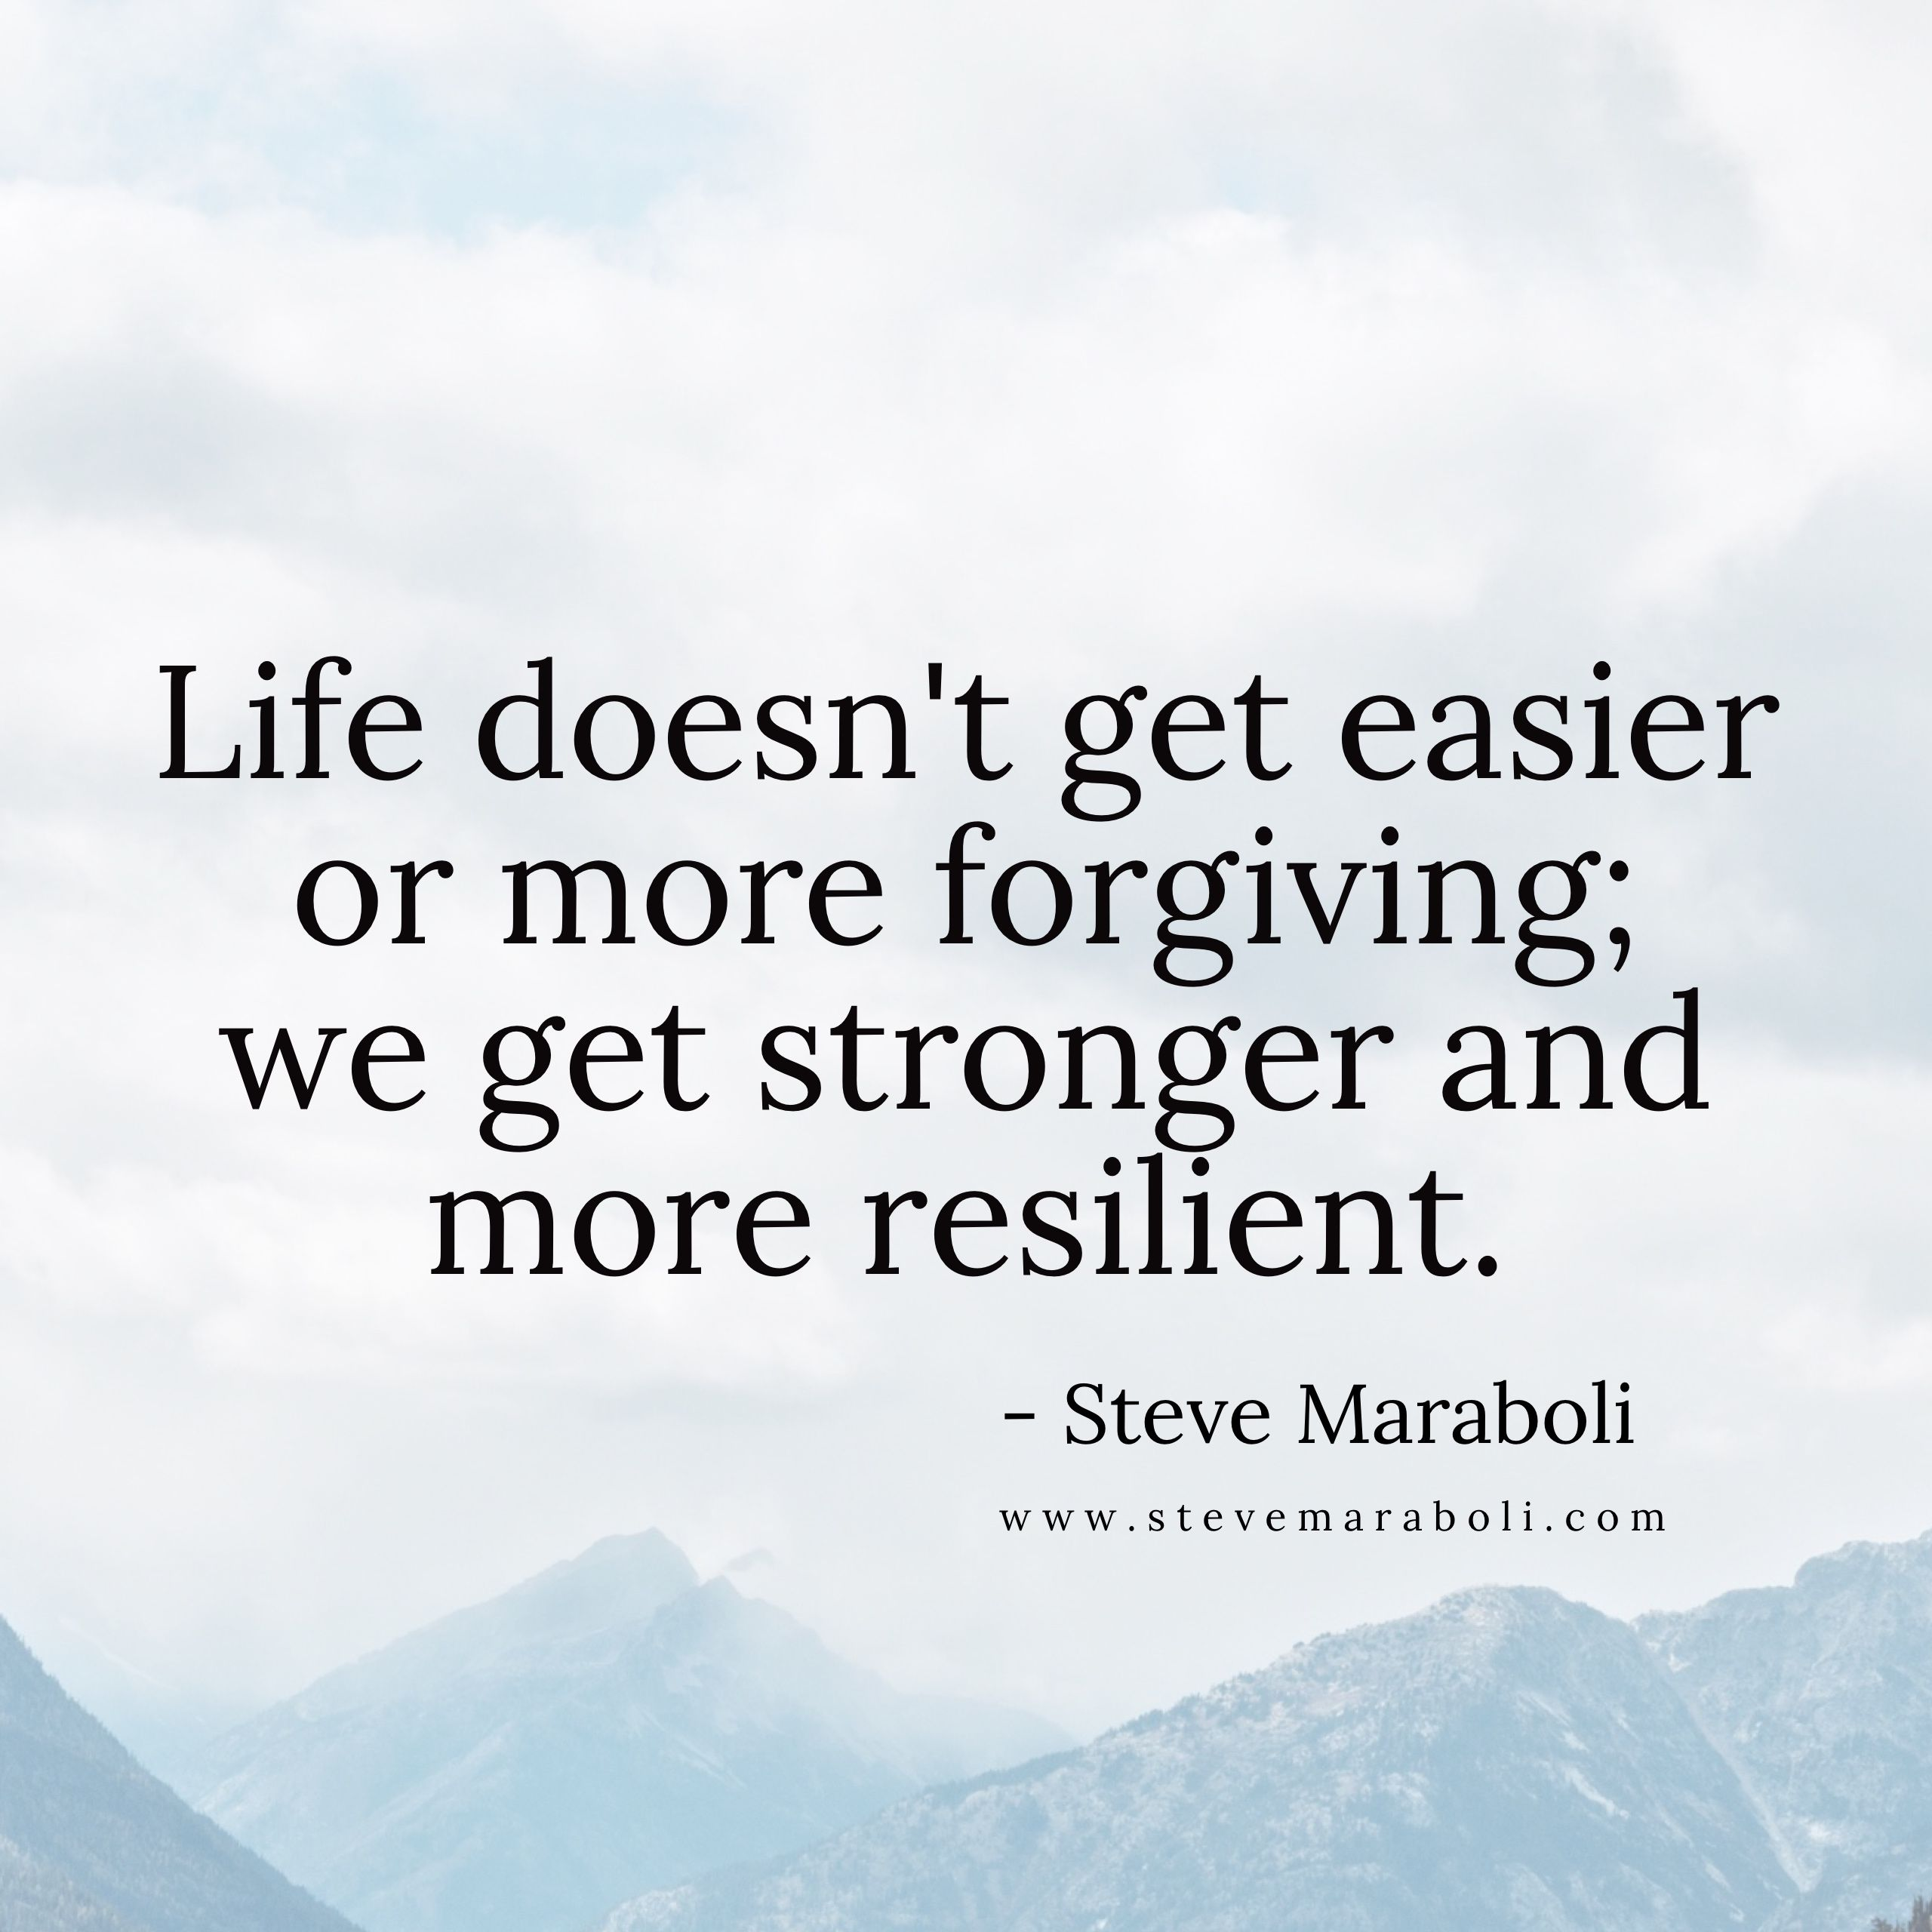 Famous Phrases About Life Life Doesn't Get Easier Or More Forgiving We Get Stronger And